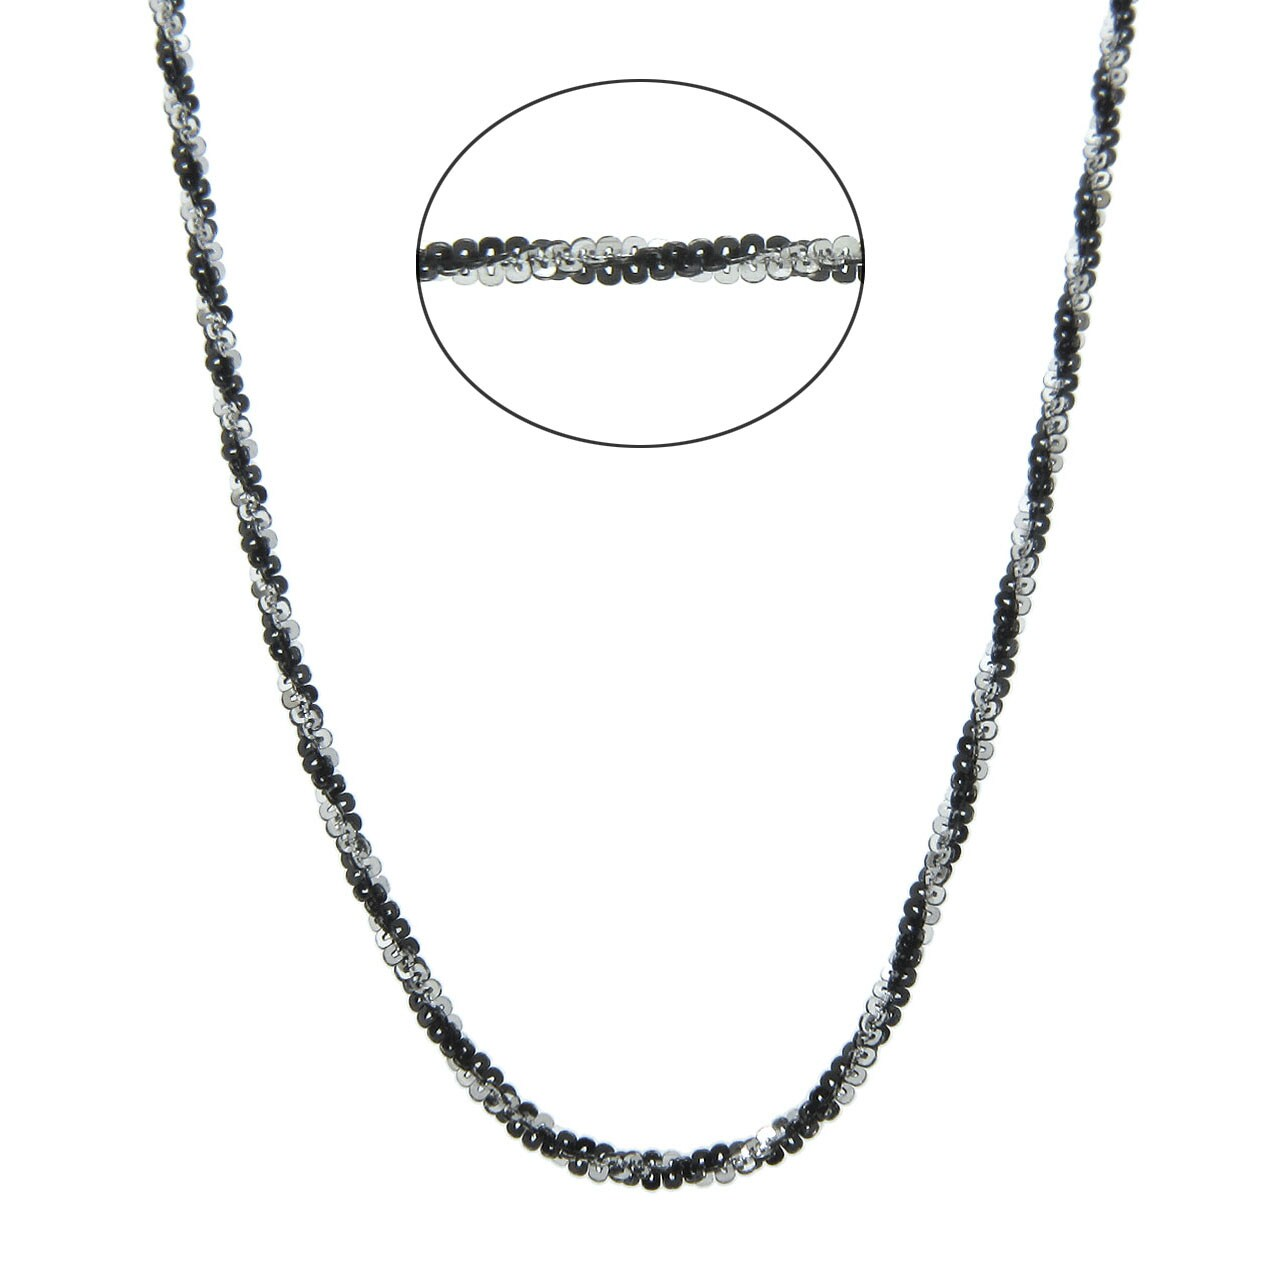 Eternally Haute Italian Black Rhodium-over-Silver Diamond-Cut Roc Chain with Lobster Claw Clasp